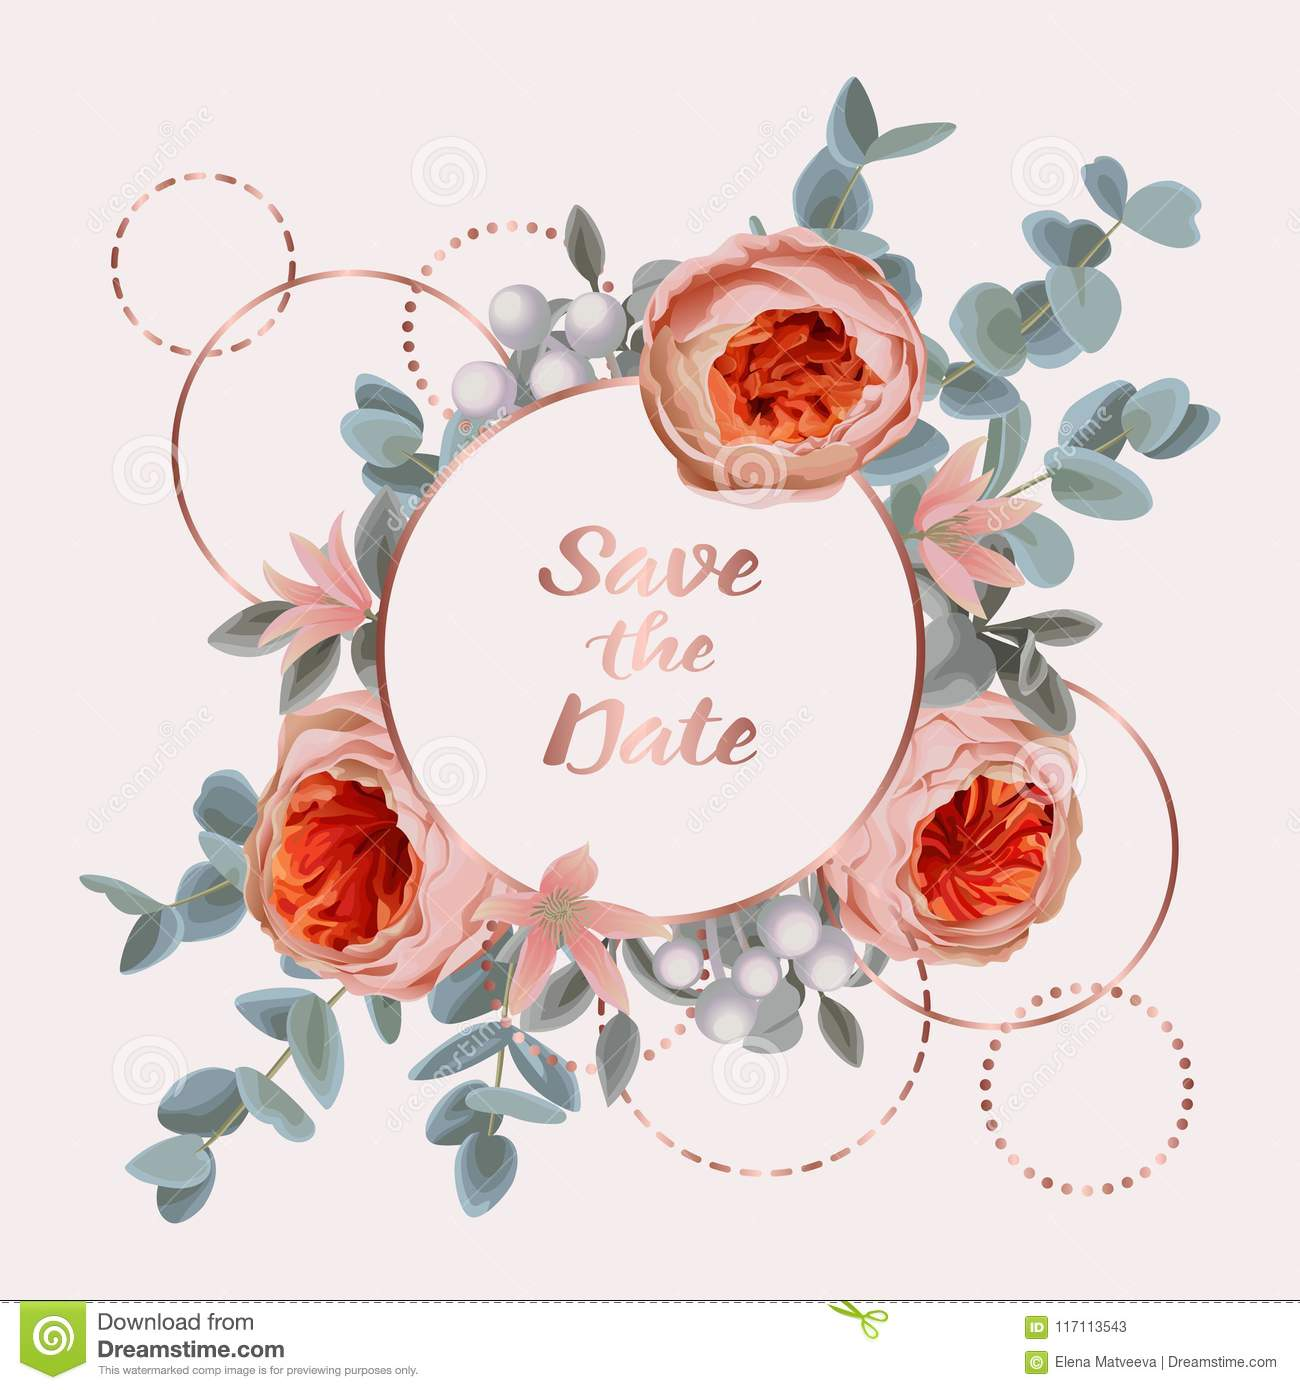 10783a61ef92 Save the Date card with pink gold frame from flowers and eucalyptus on gentle  pink background. Fashion greenery botanical greeting invite with watercolor  ...